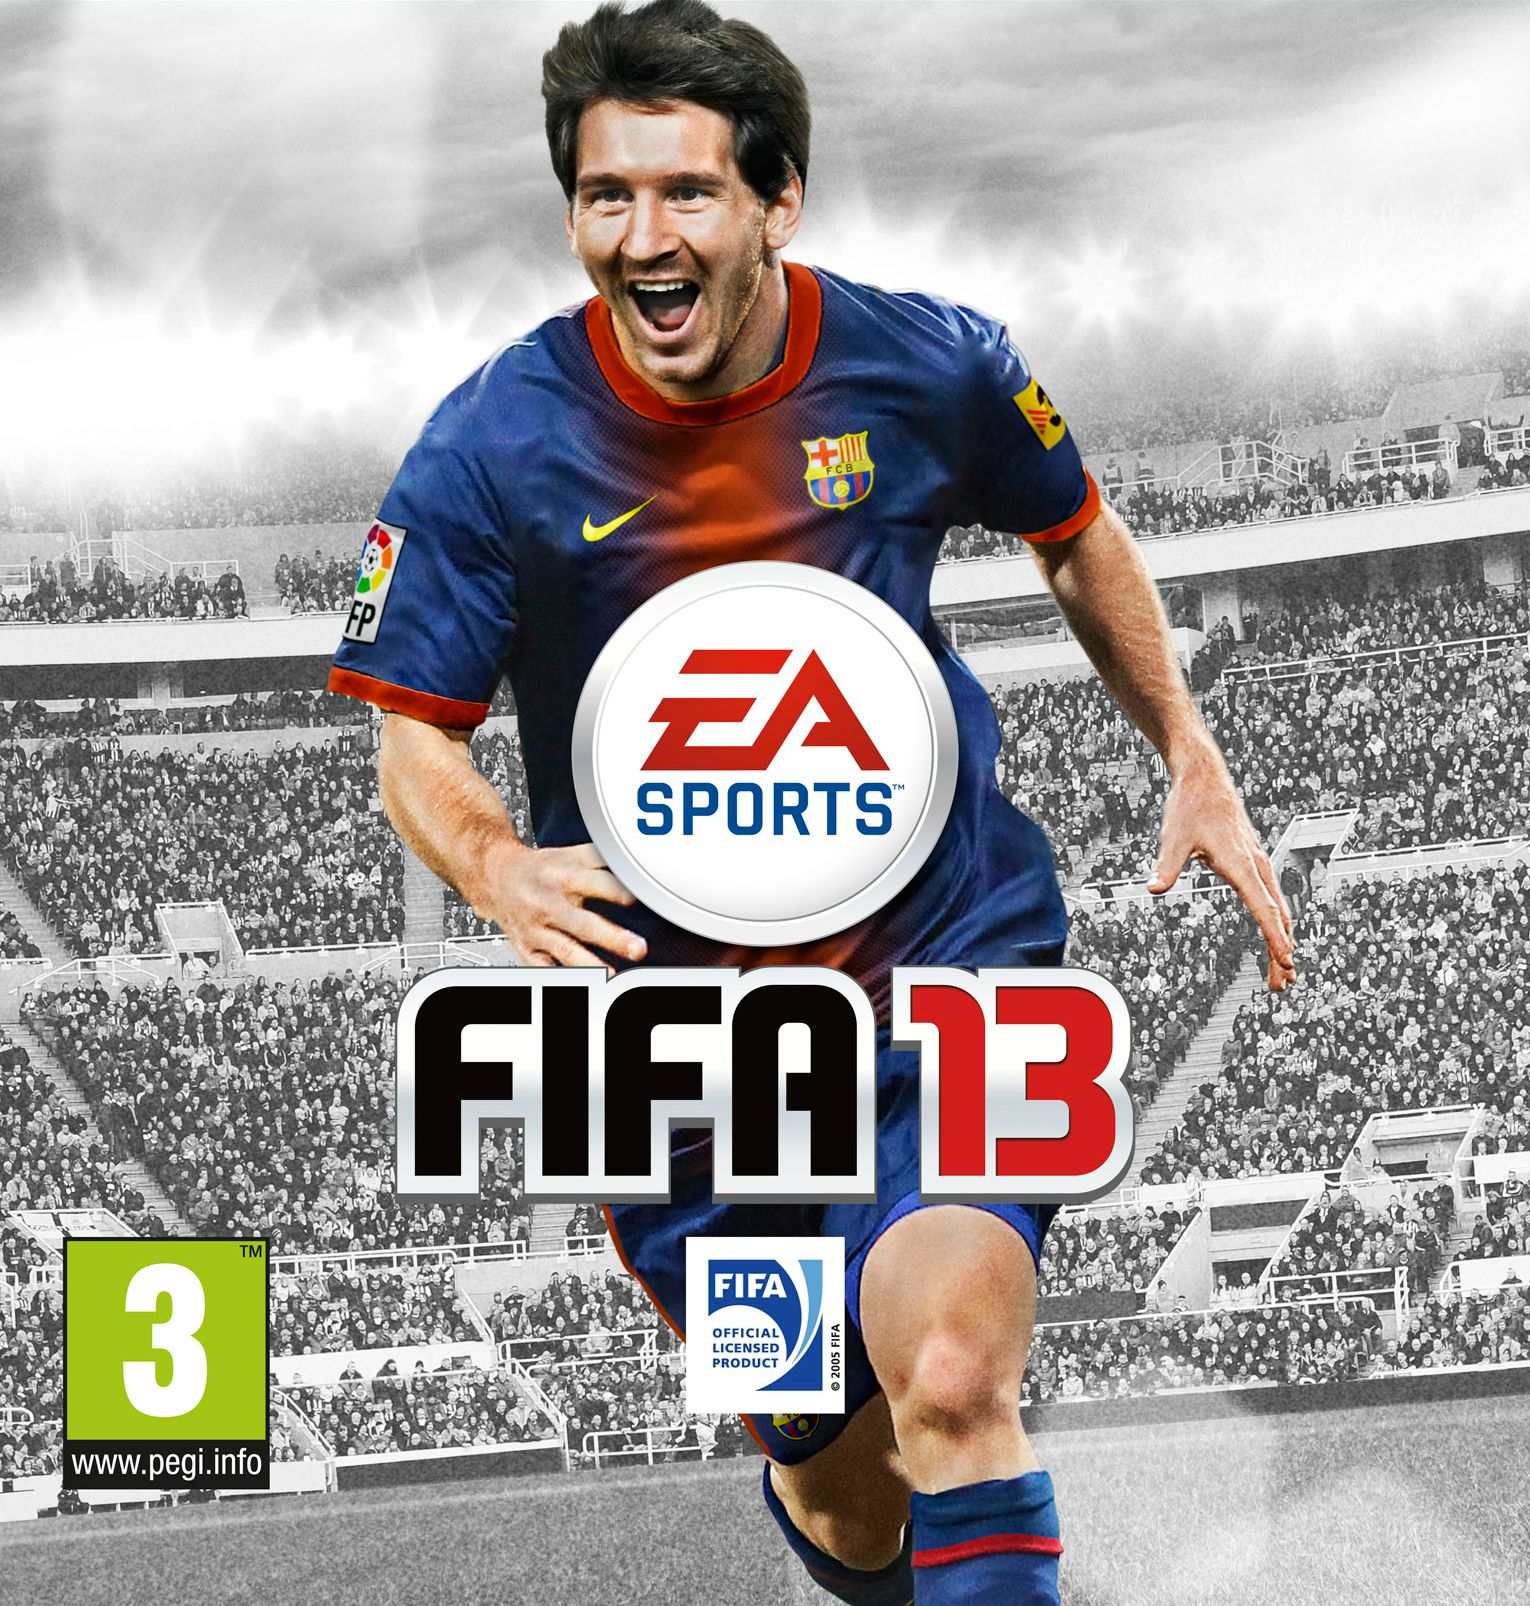 FIFA 13 Official Cover Revealed on Twitter